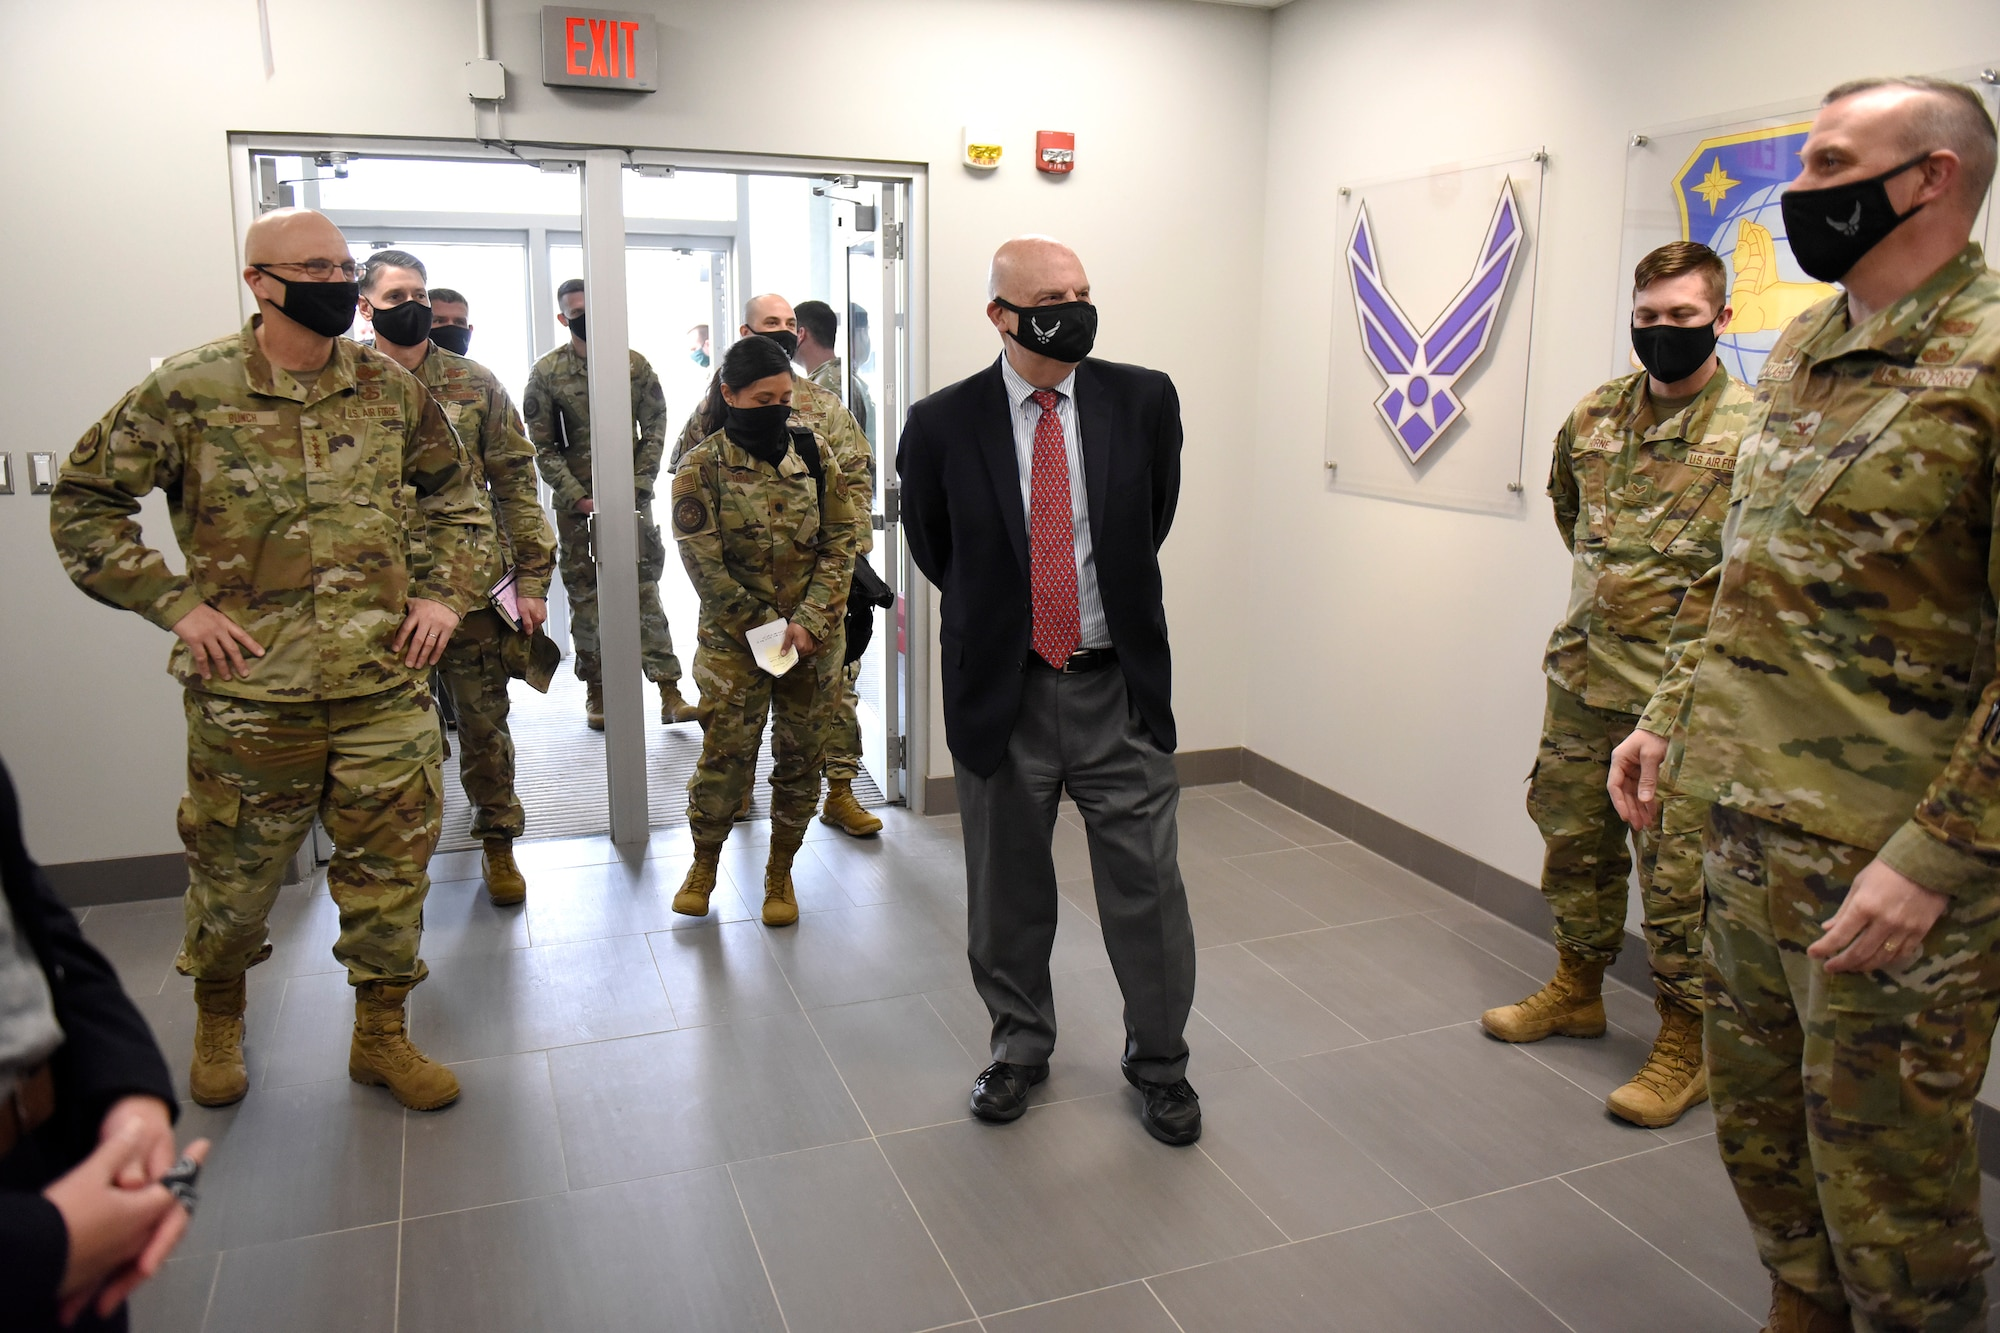 Acting Secretary of the Air Force John Roth greets Air Force personnel with the National Air and Space Intelligence Center at Wright-Patterson Air Force Base, Ohio, March 23, 2021.  Roth met with Air Force personnel and toured several facilities at the base including the U.S. Air Force School of Aerospace Medicine Epidemiology Laboratory, which is responsible for analyzing a majority of the COVID-19 tests in the Air Force. (U.S. Air Force photo by Ty Greenlees)